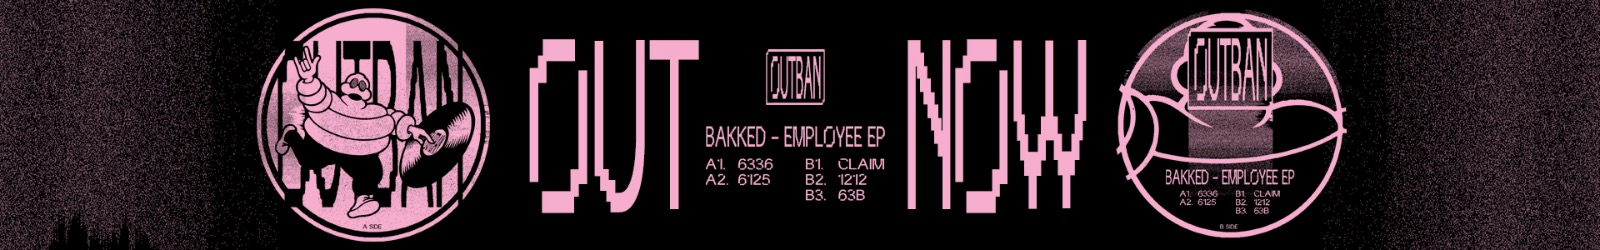 ( OUTBAN 01 ) Bakked - Employee Ep (ltd 250 copies vinyl 12) Outban